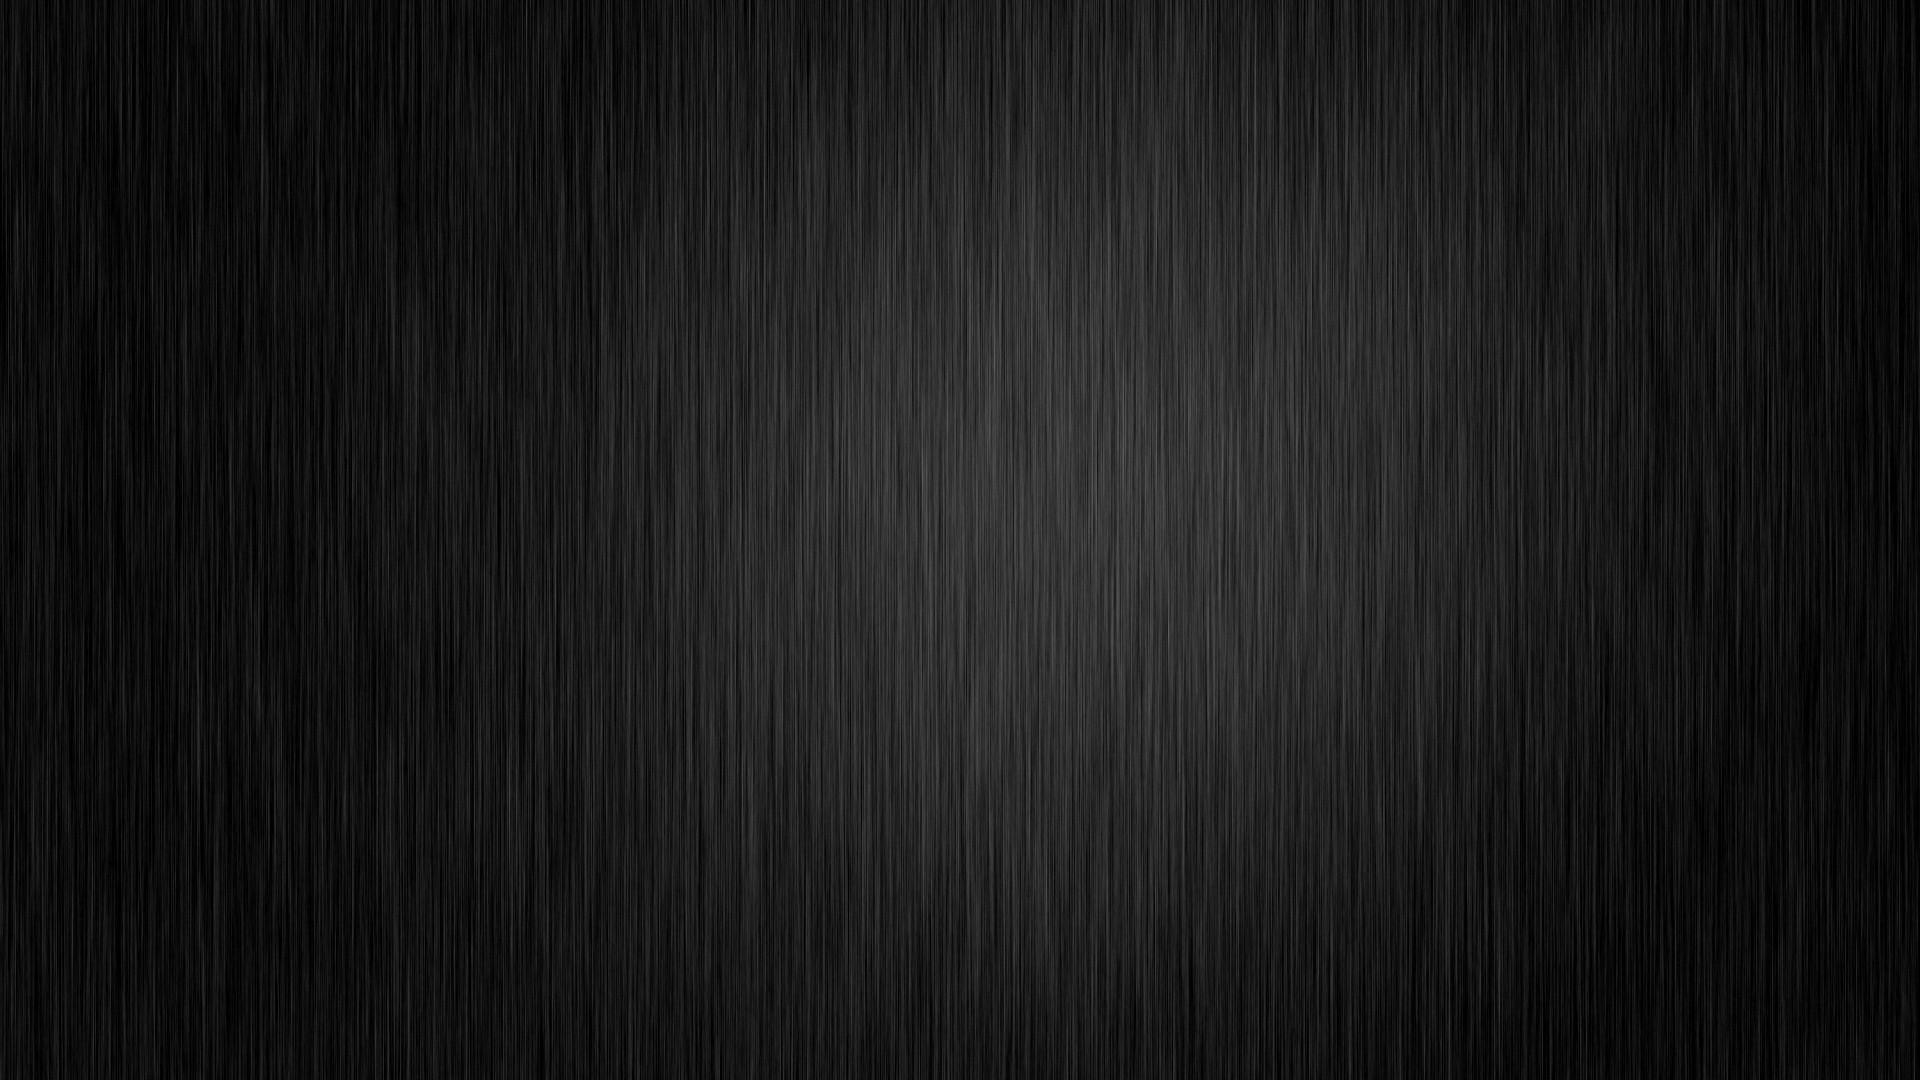 72 Black Backgrounds Download Free Beautiful Hd